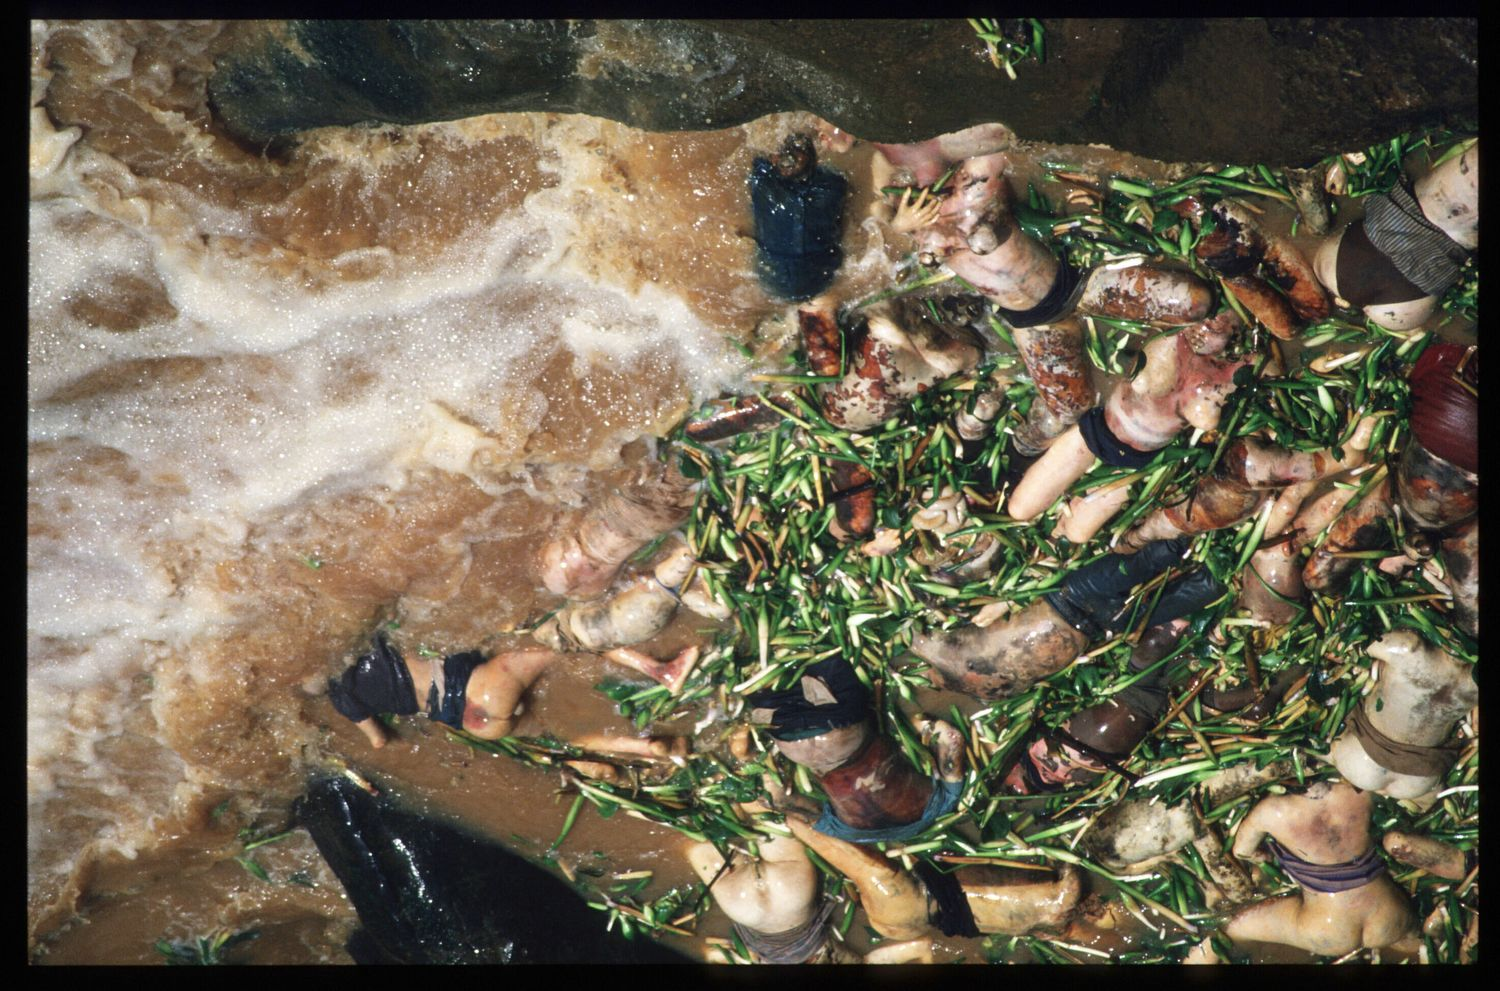 187079 38: Corpses float down the Akagara River May 3, 1994 at the border of Rwanda and Tanzania. Hutu refugees have fled to Tanzania across the Akagara River in order to escape reprisals by Tutsi rebels. (Photo by Scott Peterson/Liaison)